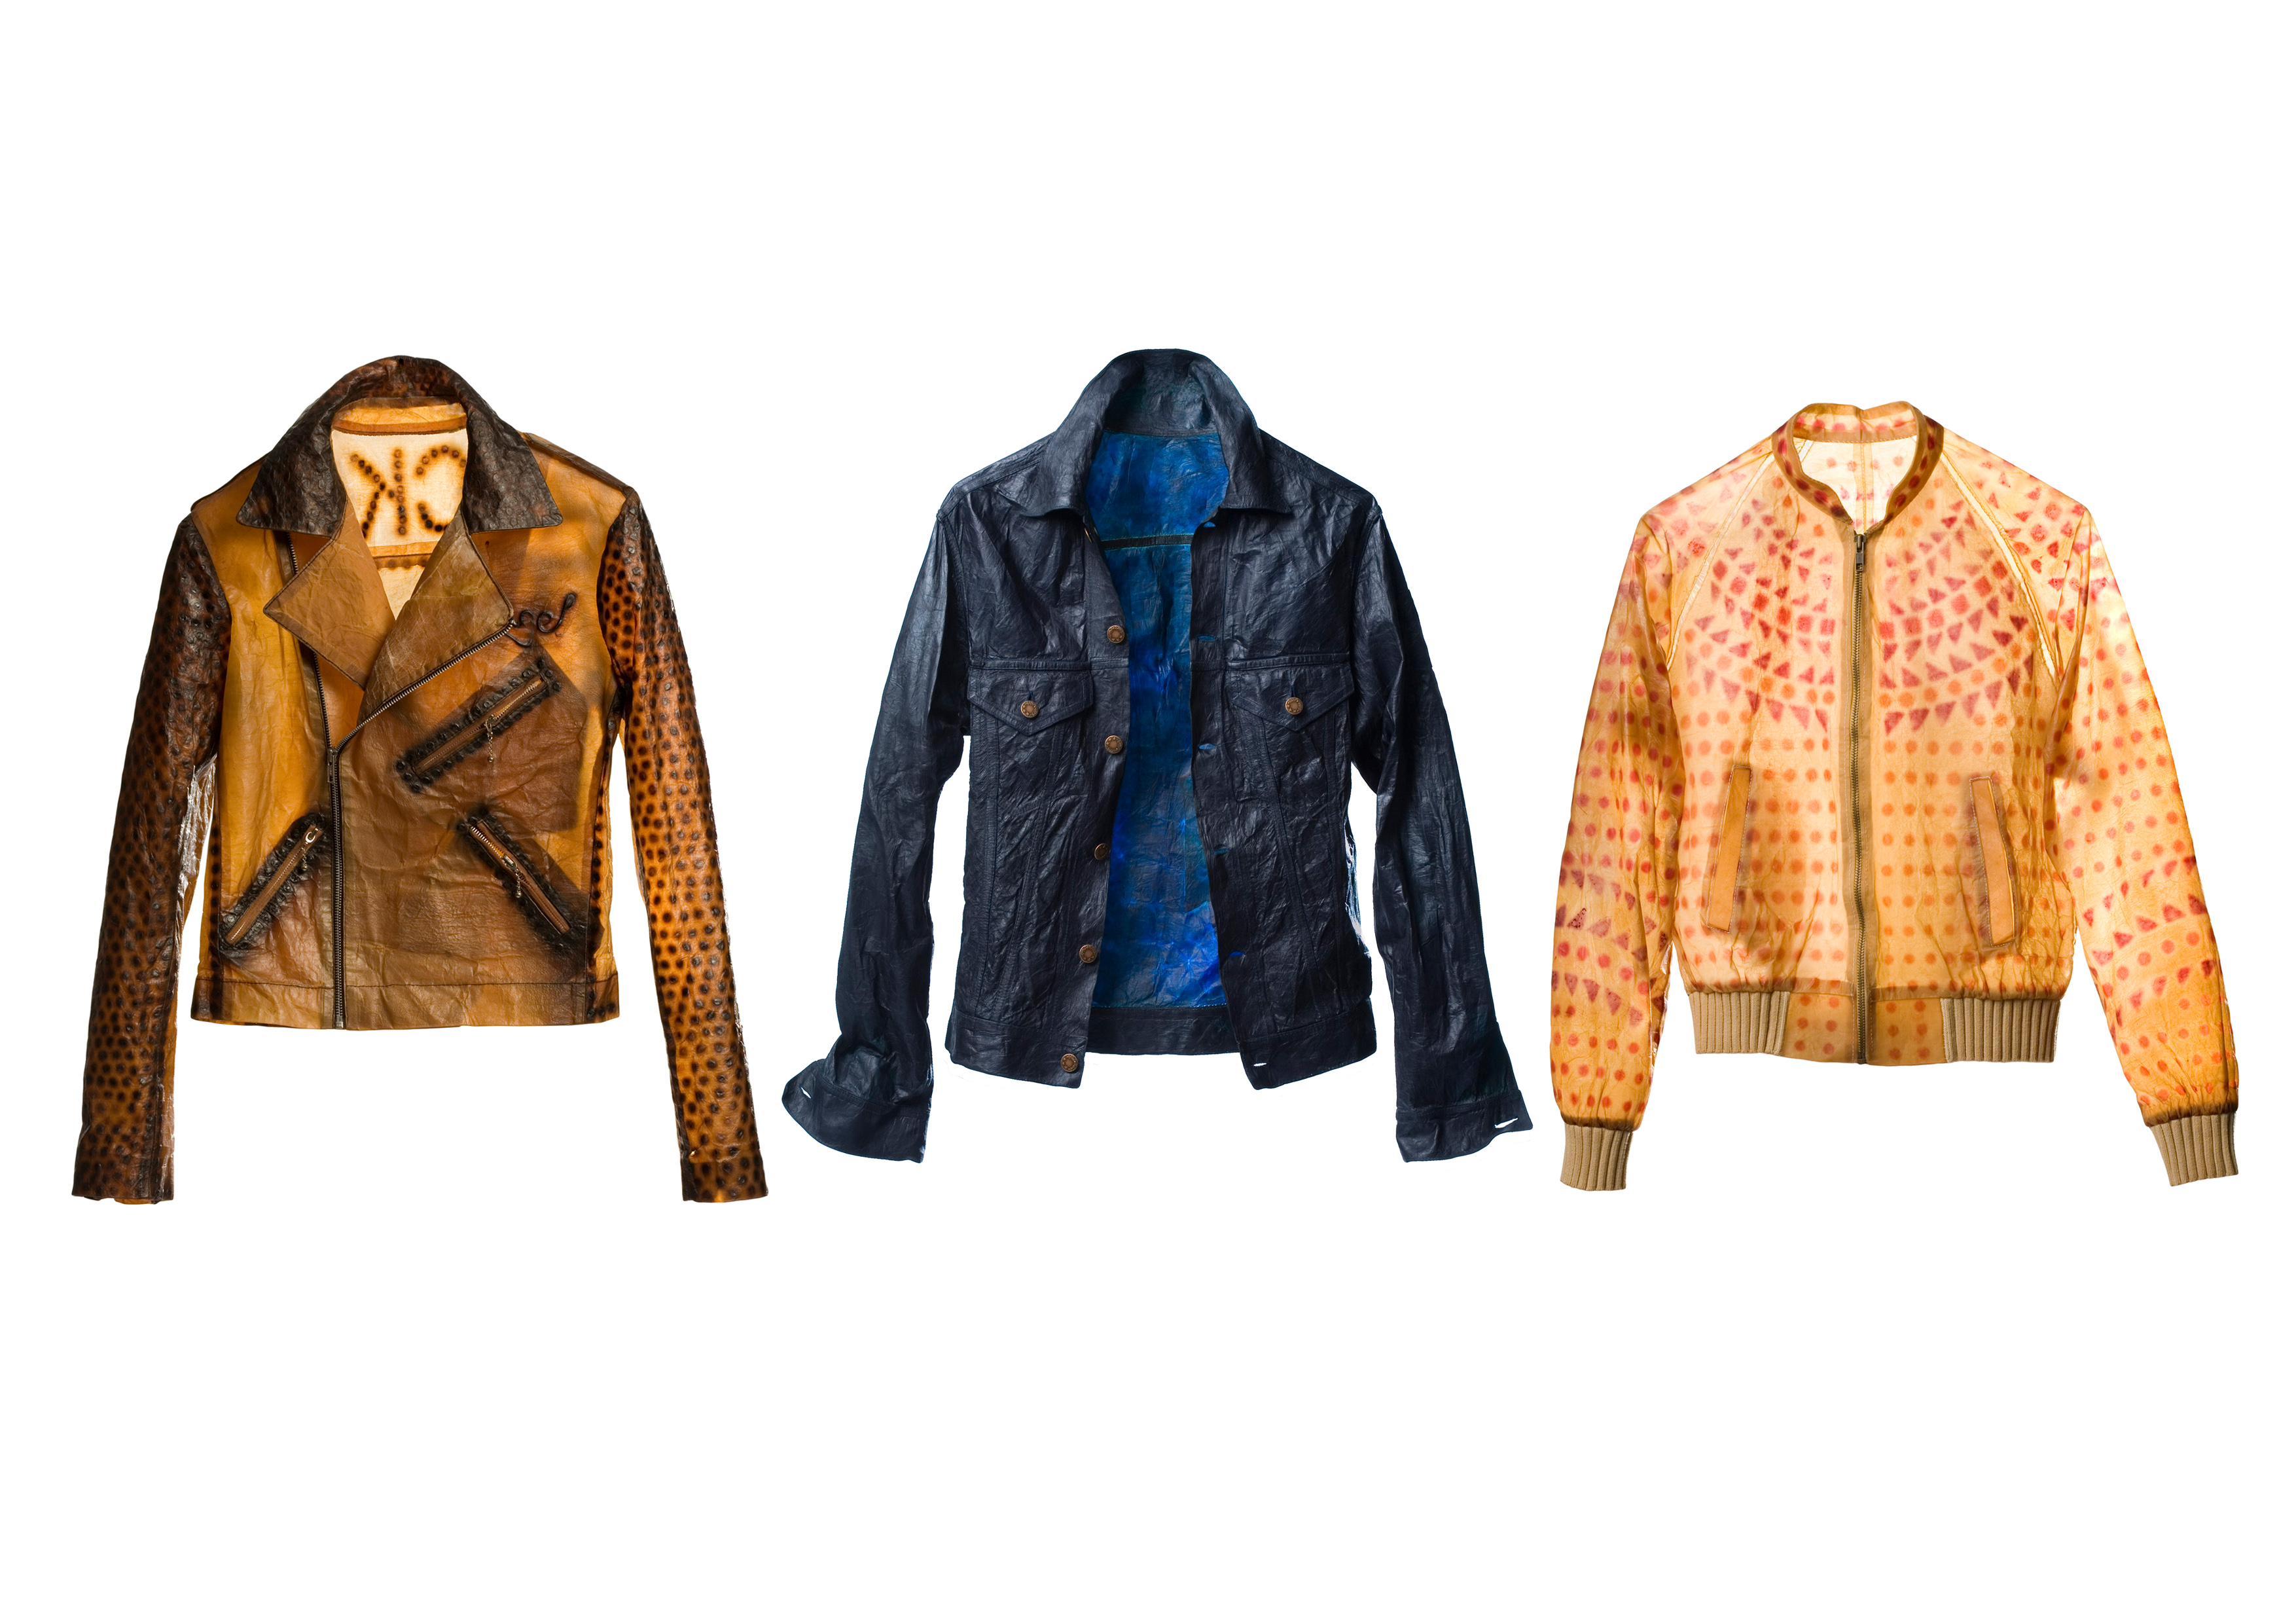 Biocouture jackets made of cellulose material